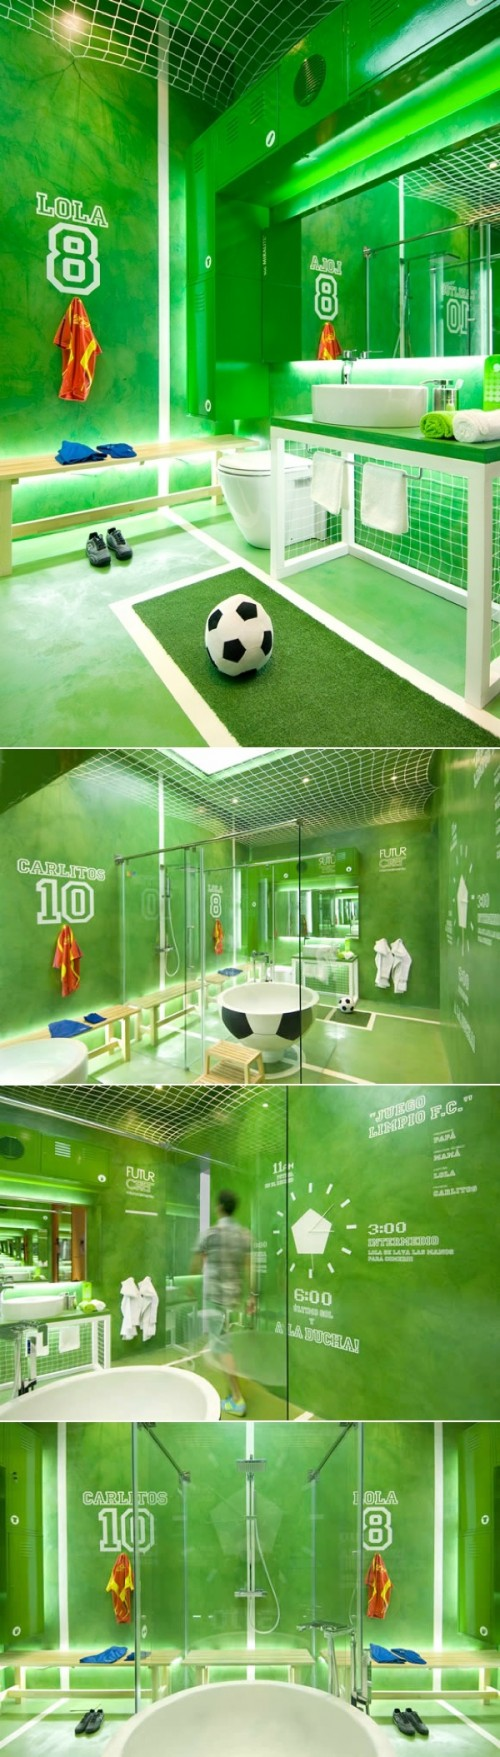 Boys soccer bedroom ideas - 10 Boys Soccer Room Ideas From Paint To Decor To Furniture